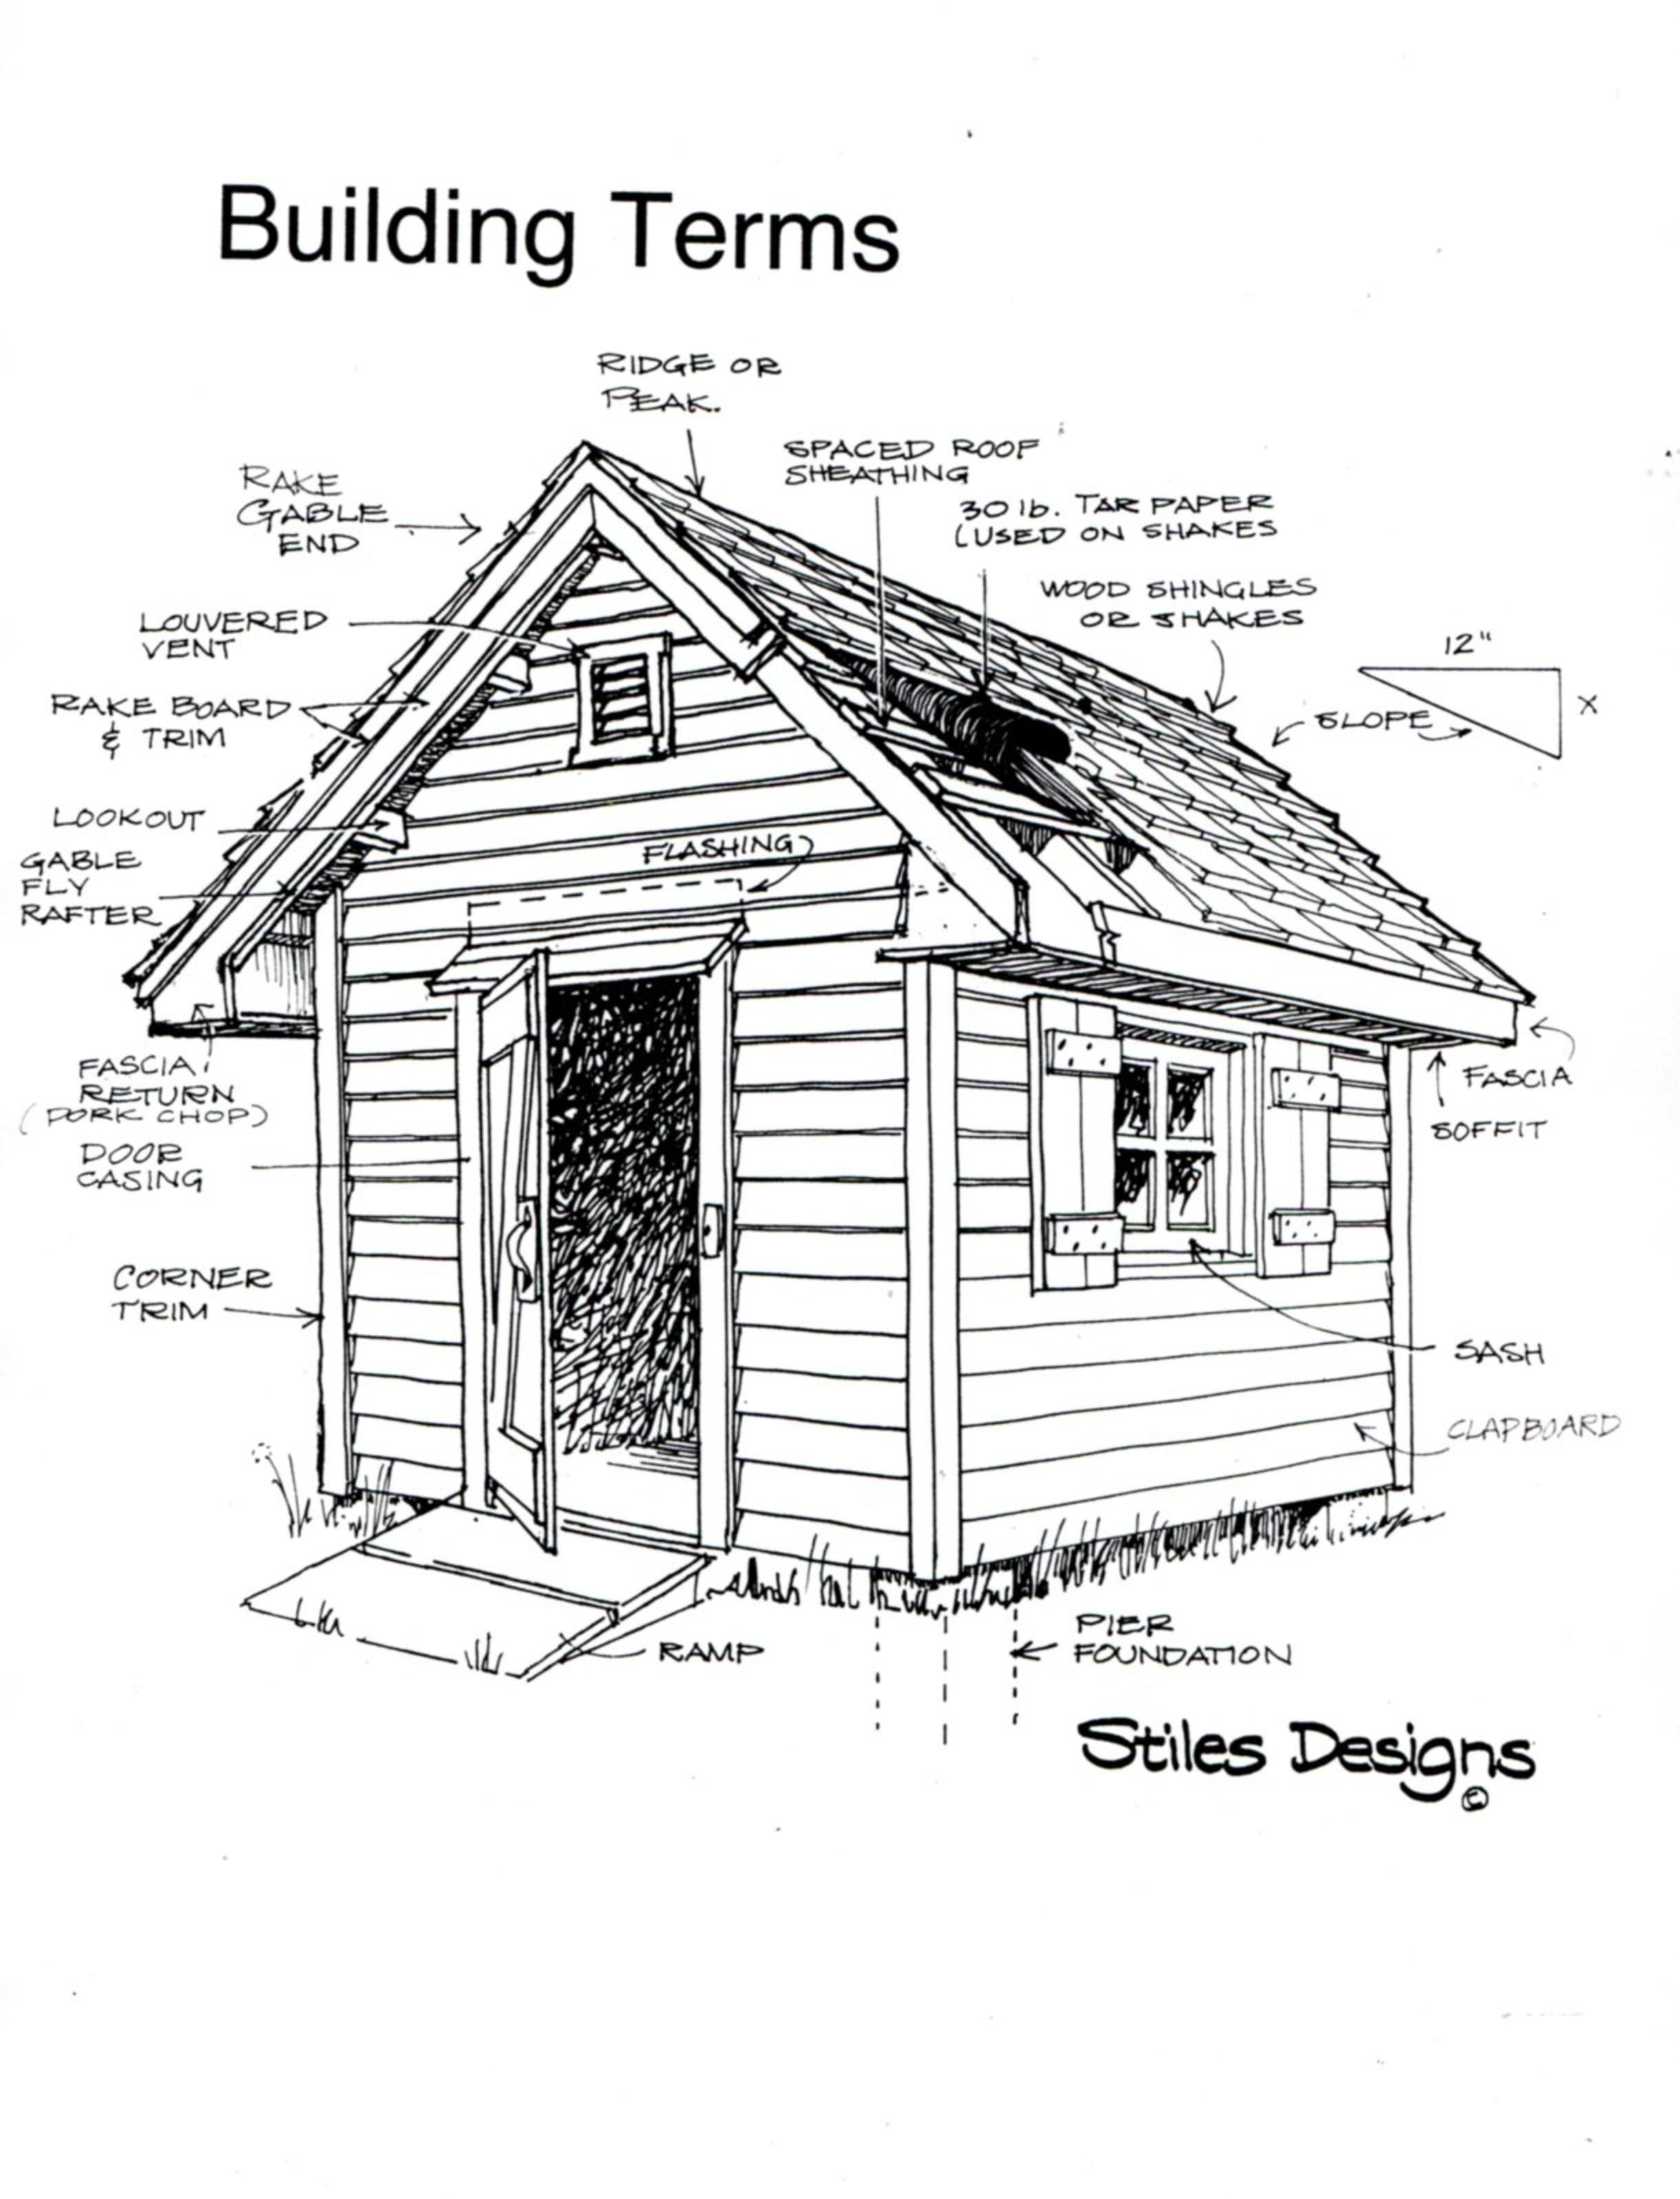 Check out this handy guide for all sorts of building terms